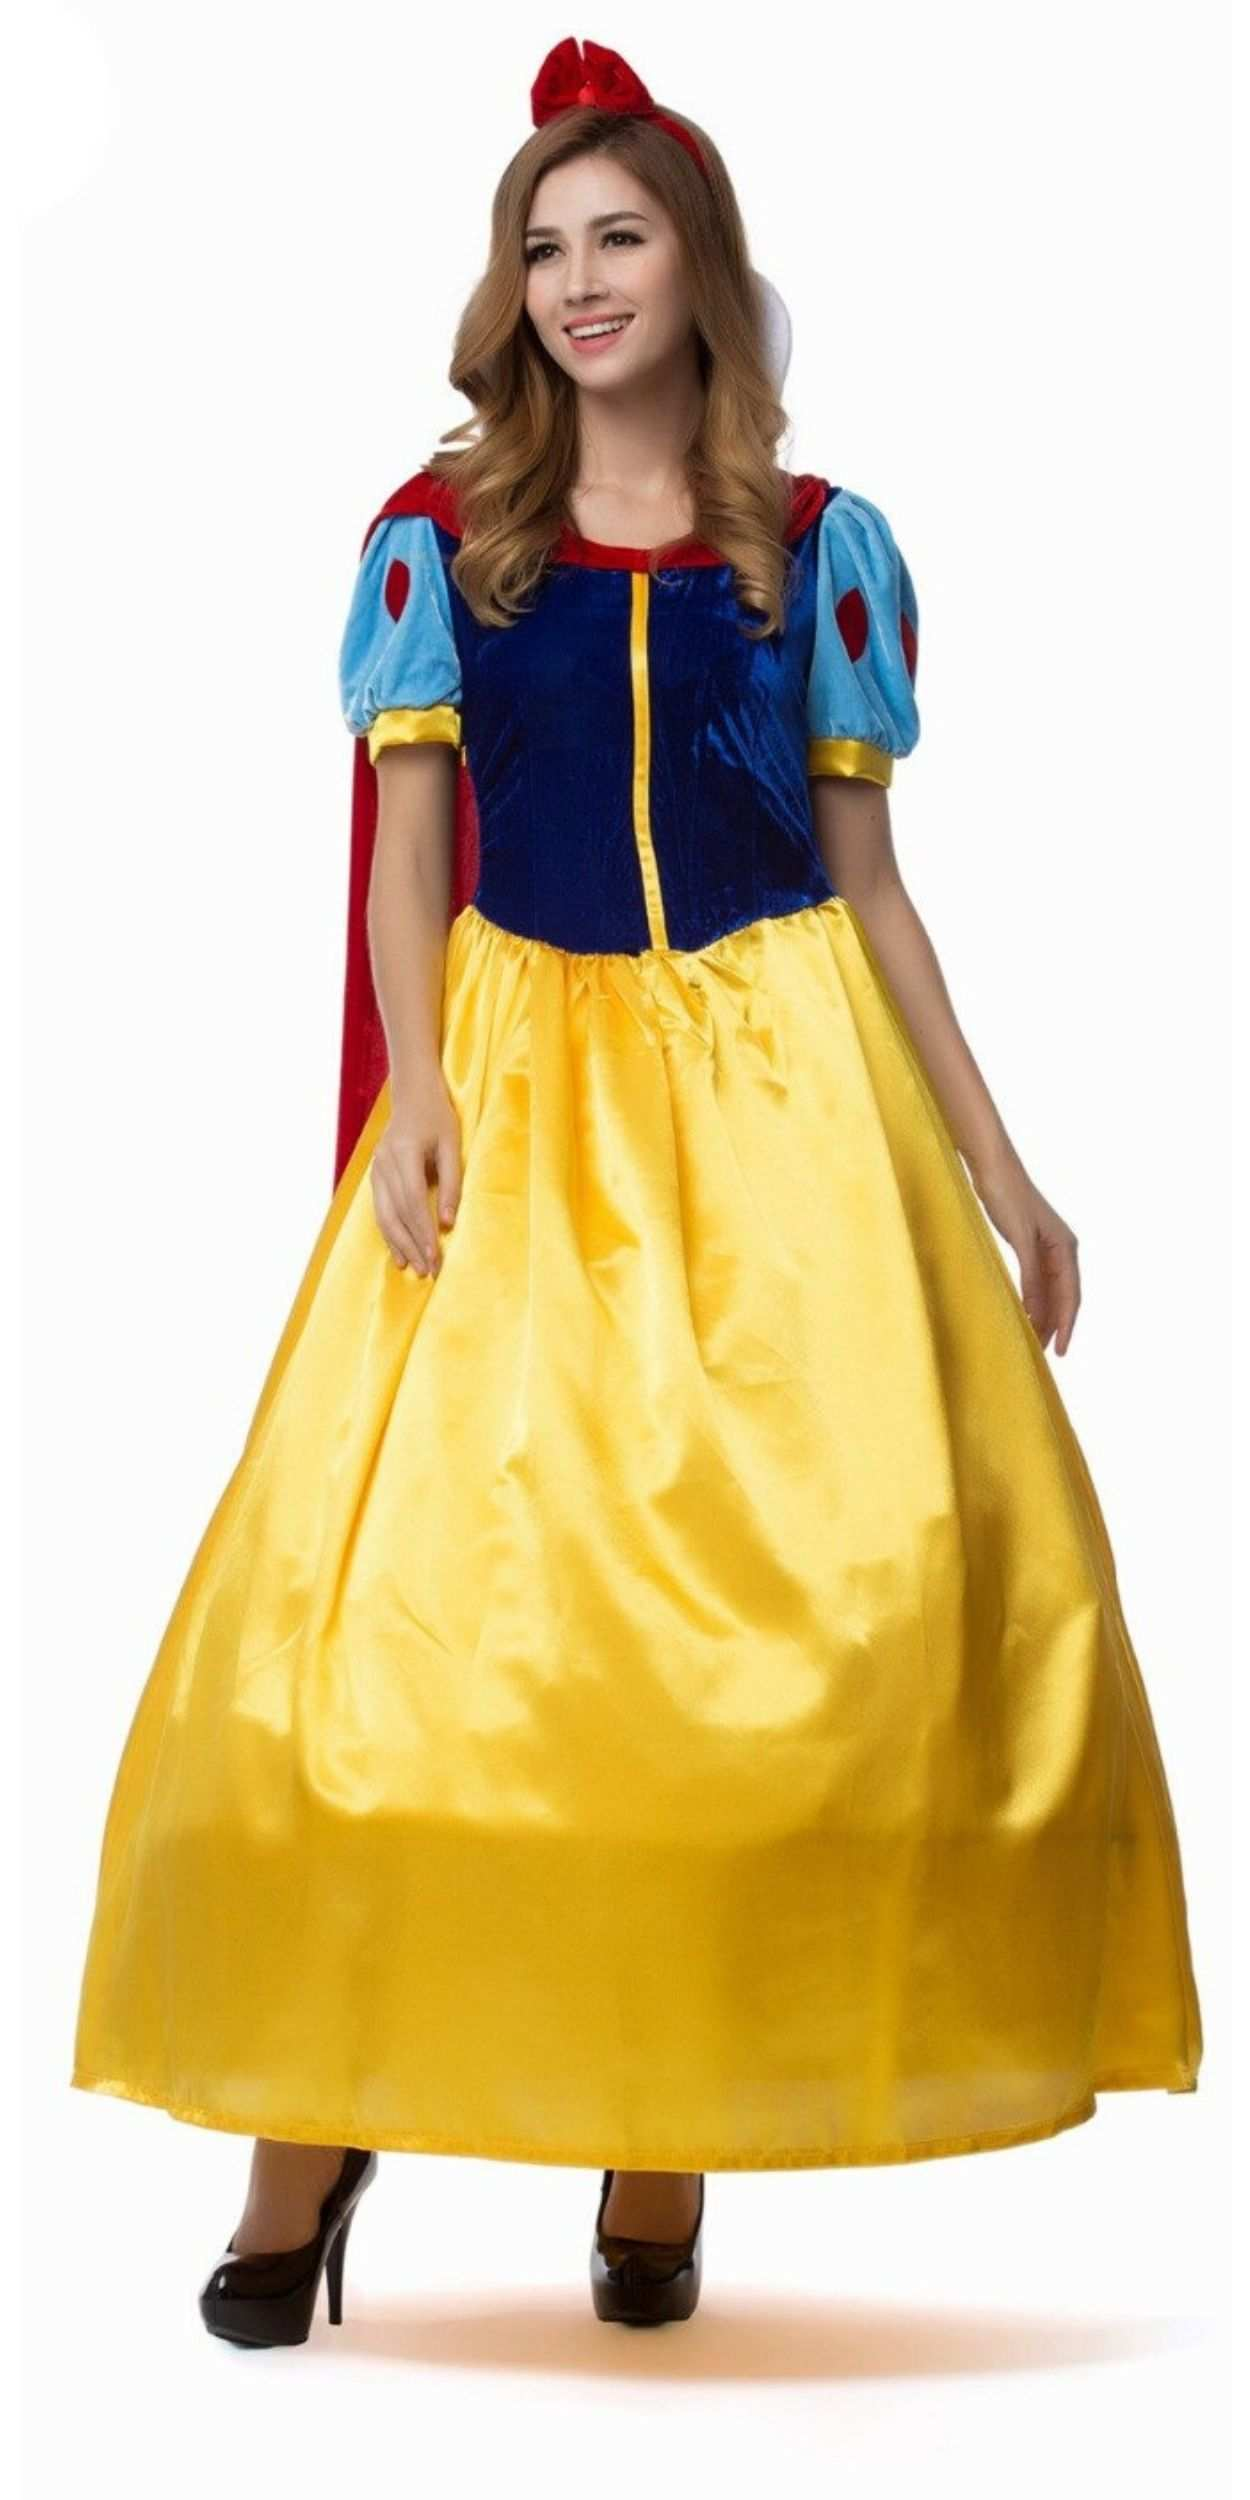 Woman in Snow White Party Costume